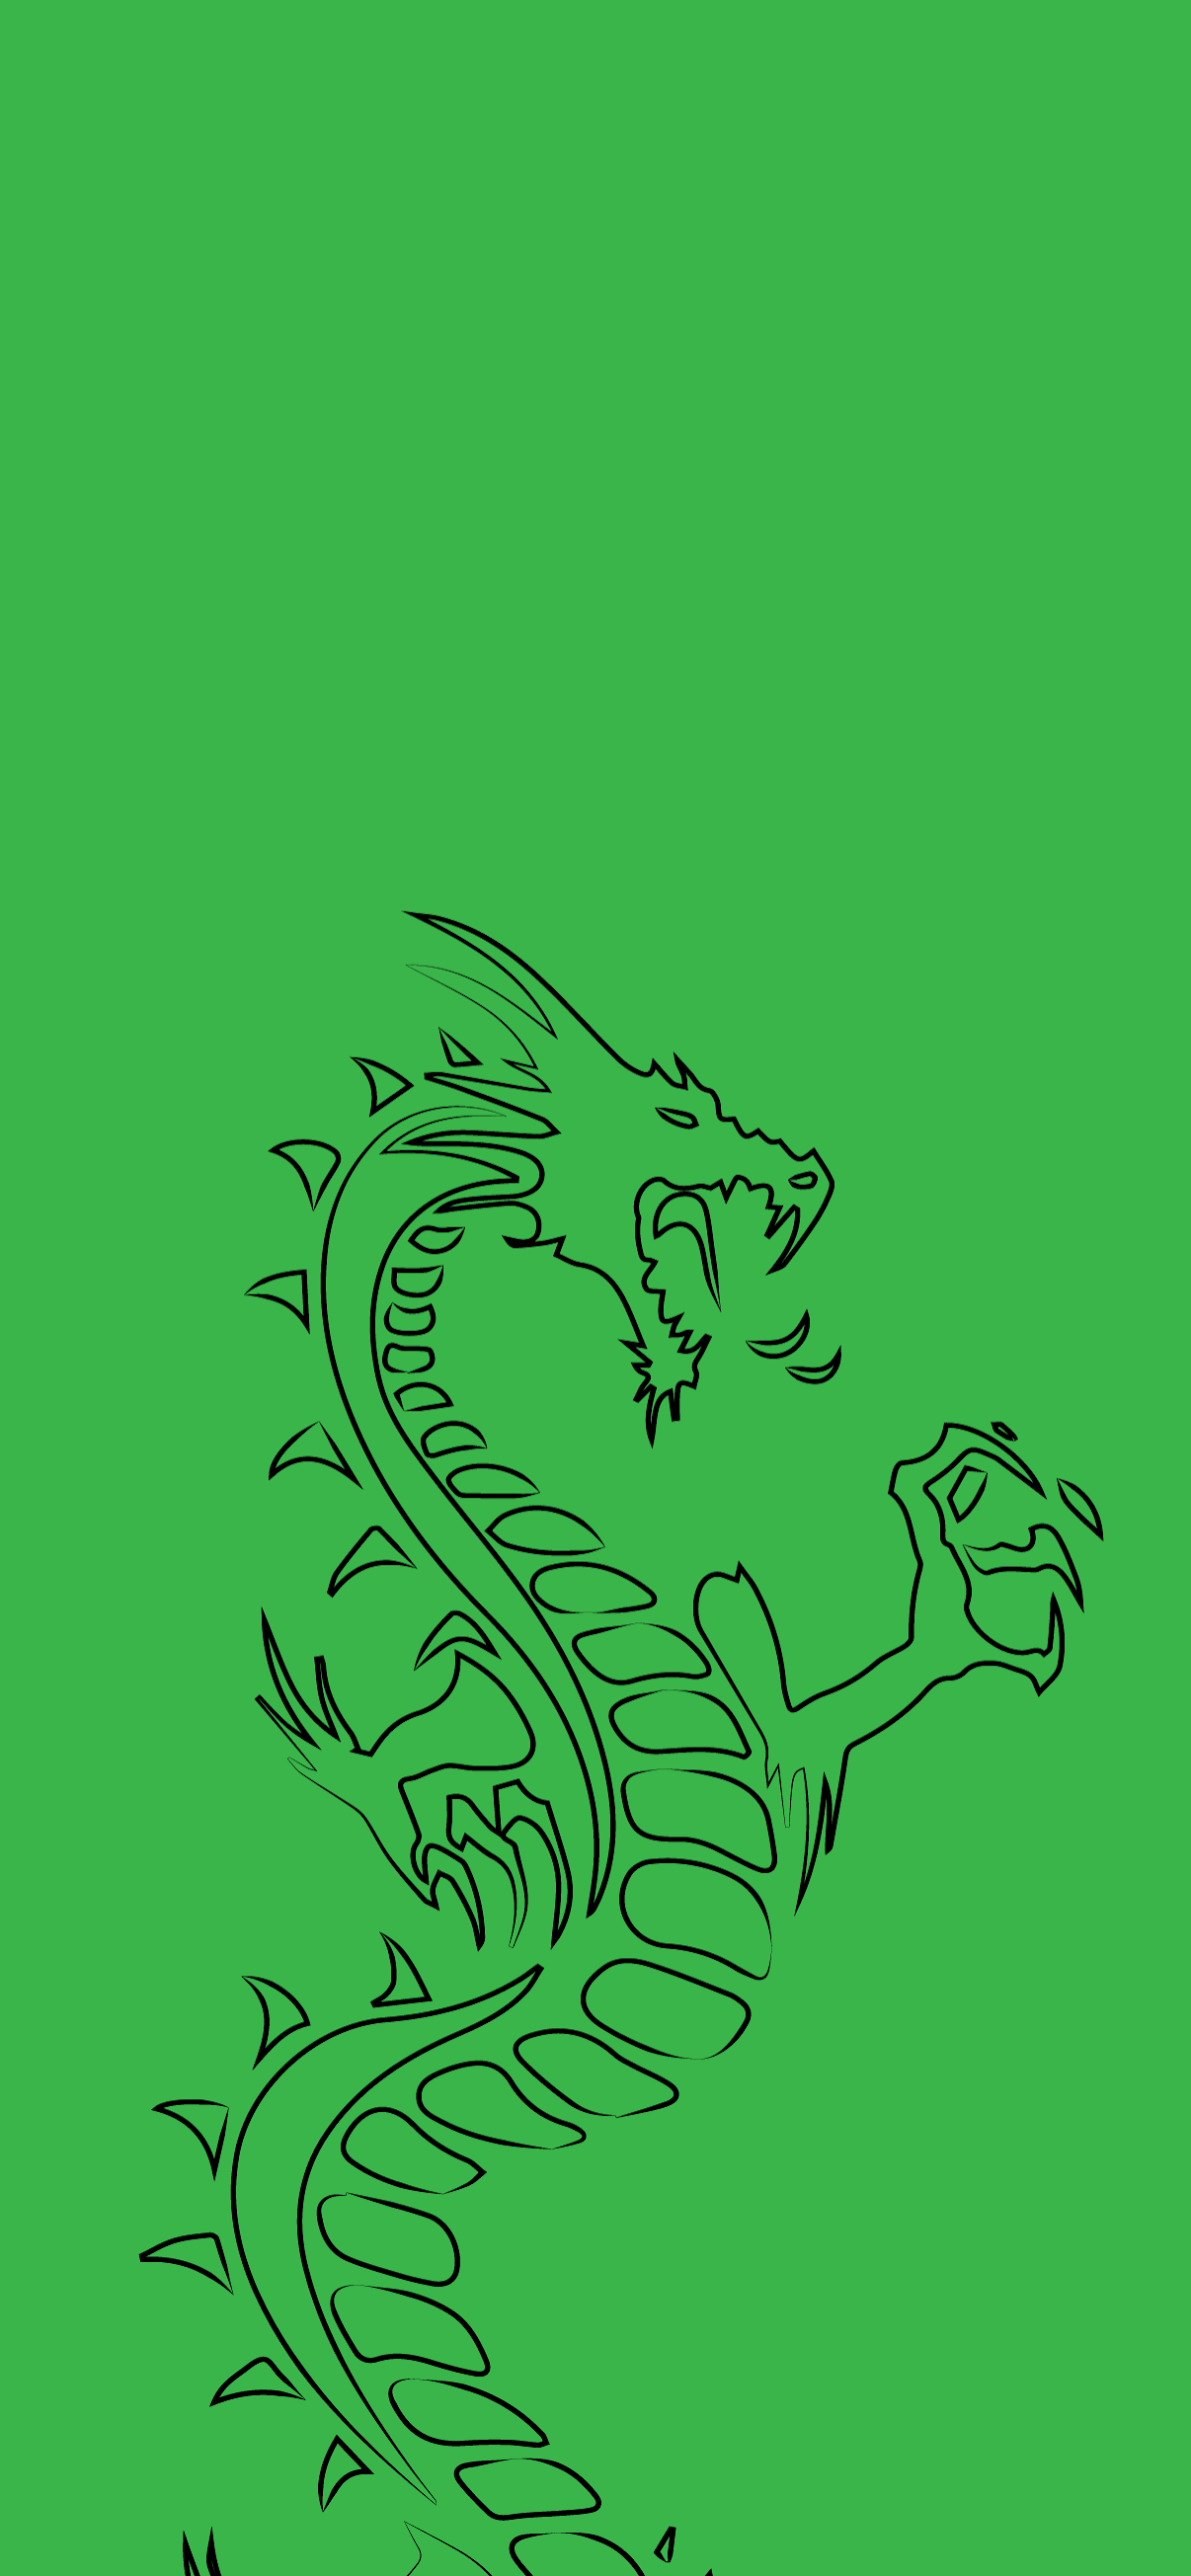 dragon silhouette in green background hd for mobile phone